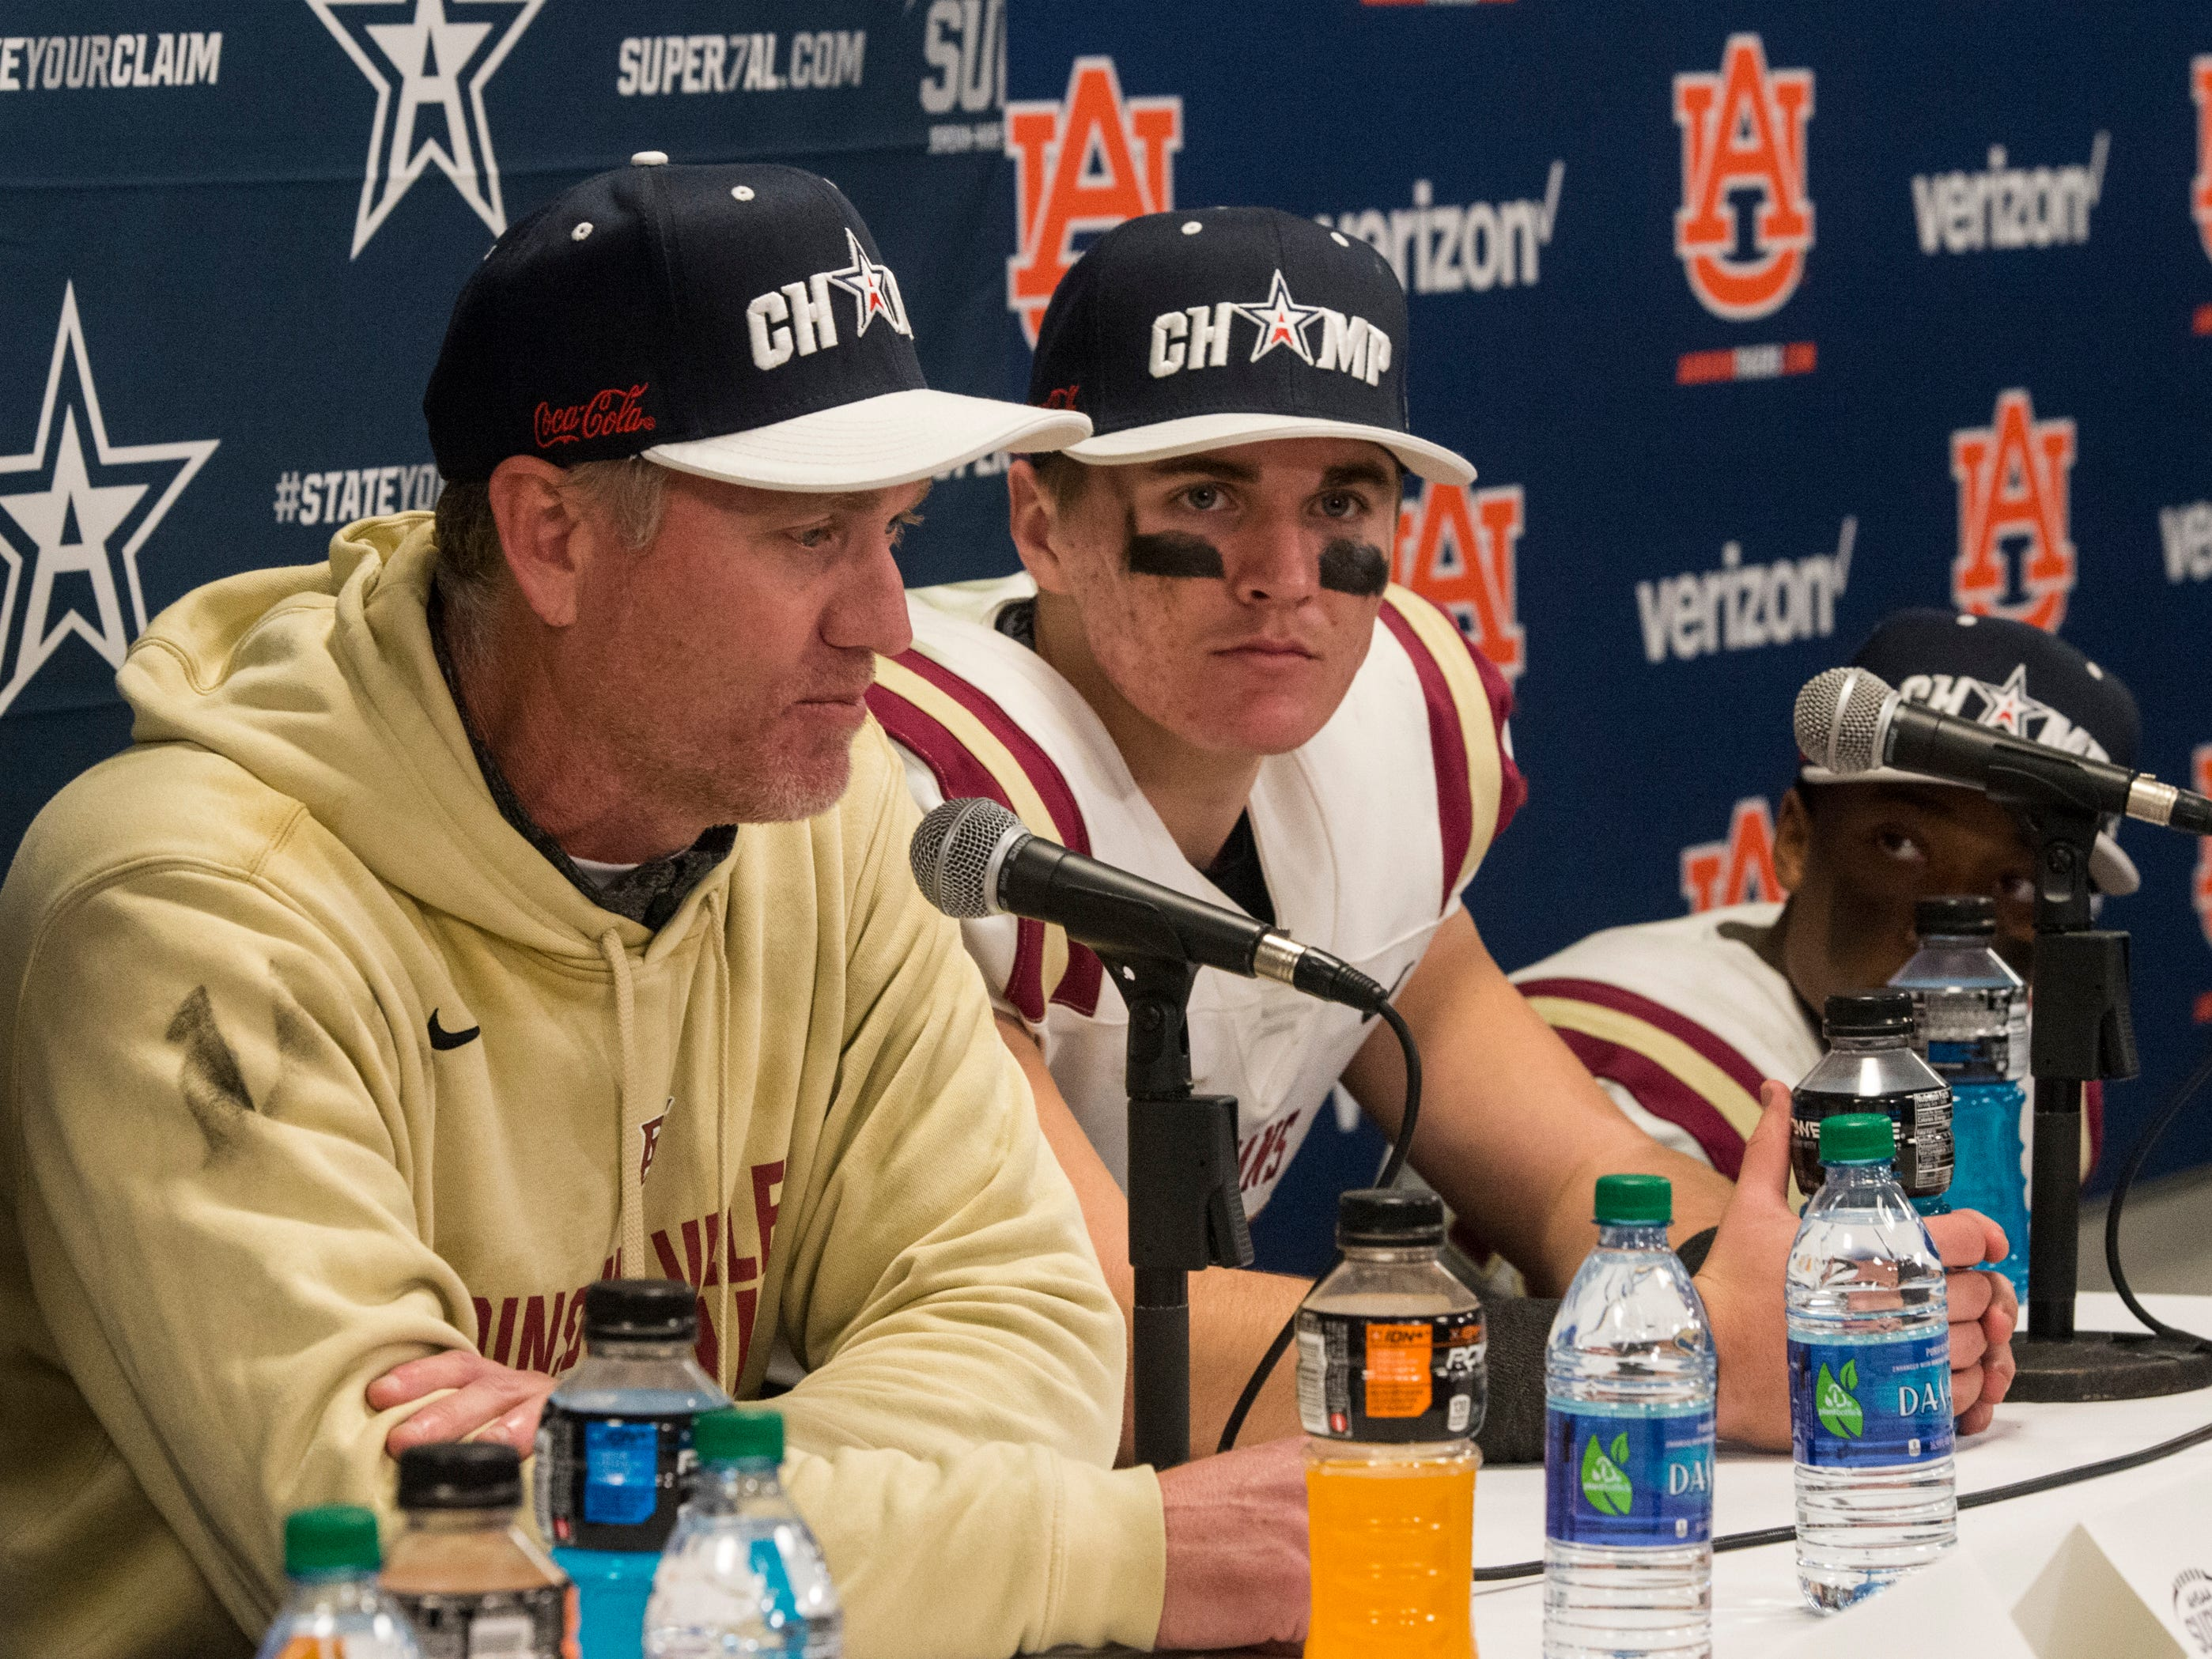 Pinson Valley coach Patrick Nix and his son quarterback Bo Nix (10) talk during the press conference during the Class 6A state championship at Jordan-Hare Stadium in Auburn, Ala., on Friday, Dec. 7, 2018. Pinson Valley defeated Saraland 26-17.